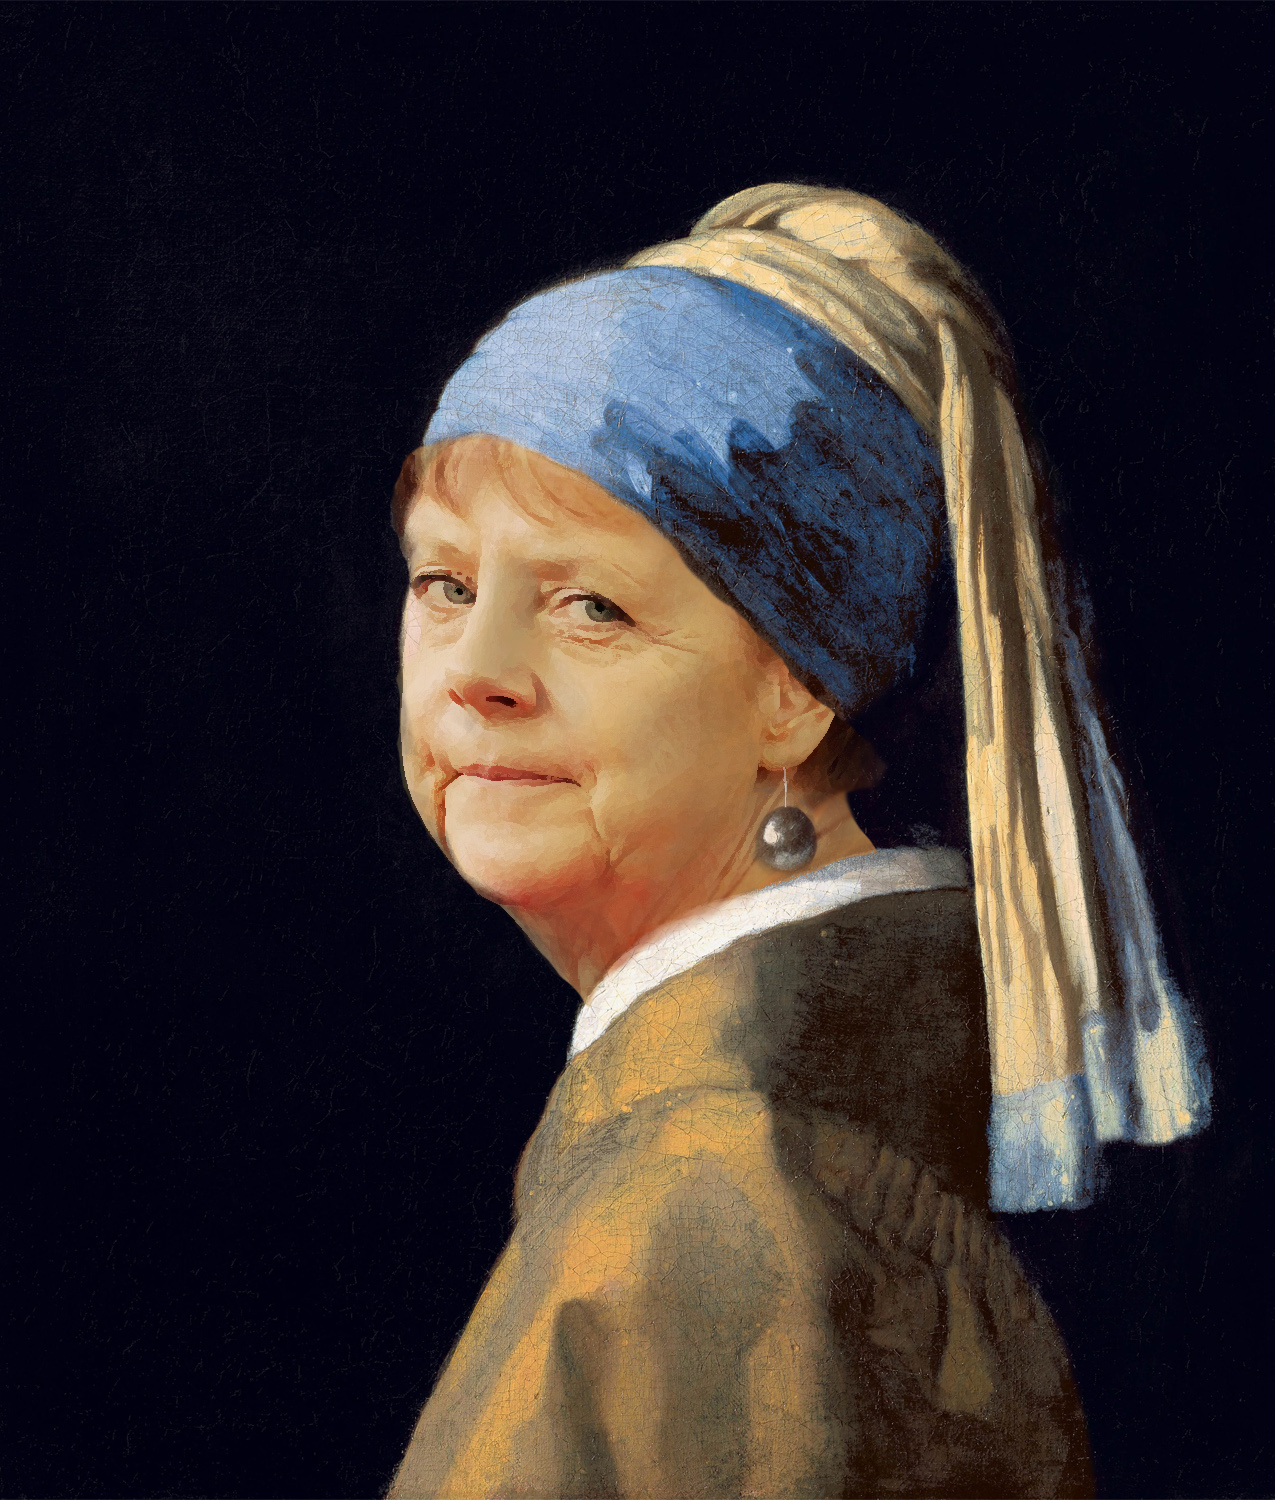 Angela Merkel as Girl with a Pearl Earring